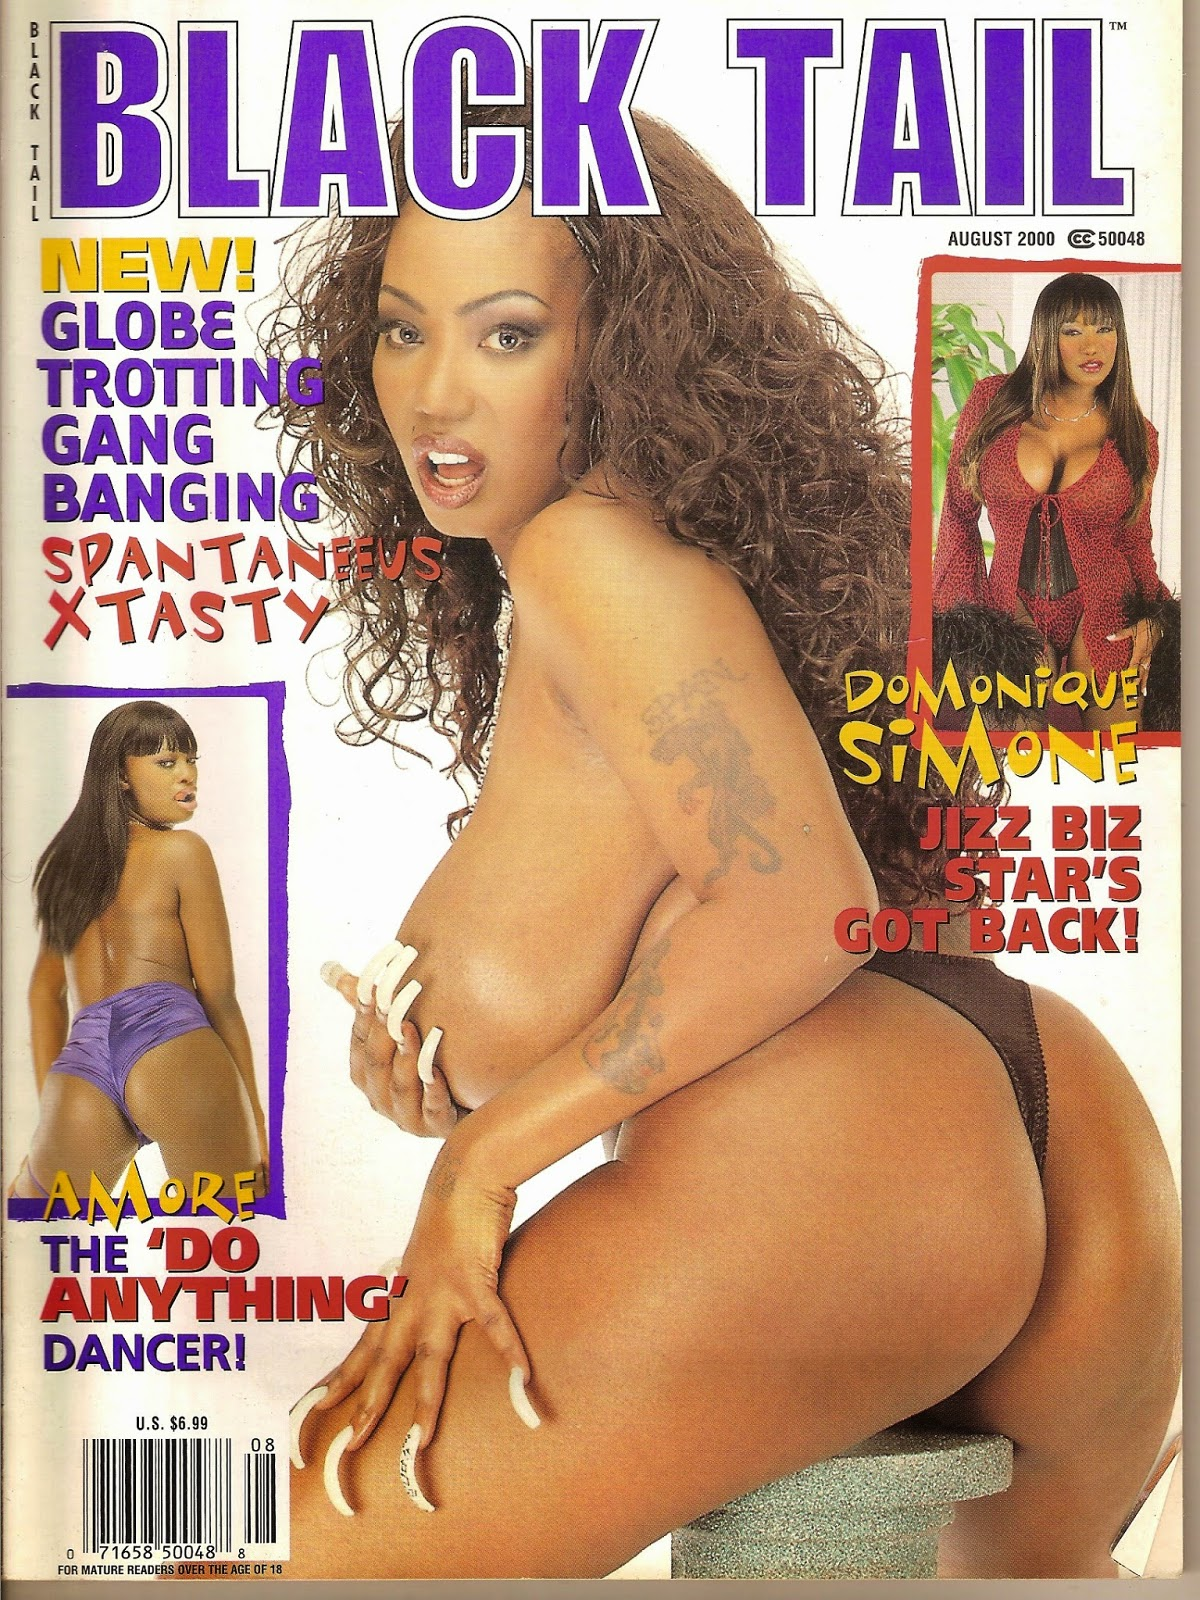 pleasure porn magazine Plus another porn legend bares it all-Domonique Simone! There are 4 more  hot sistas spreading pink pussies for your viewing pleasure! Sorry!Sold out!